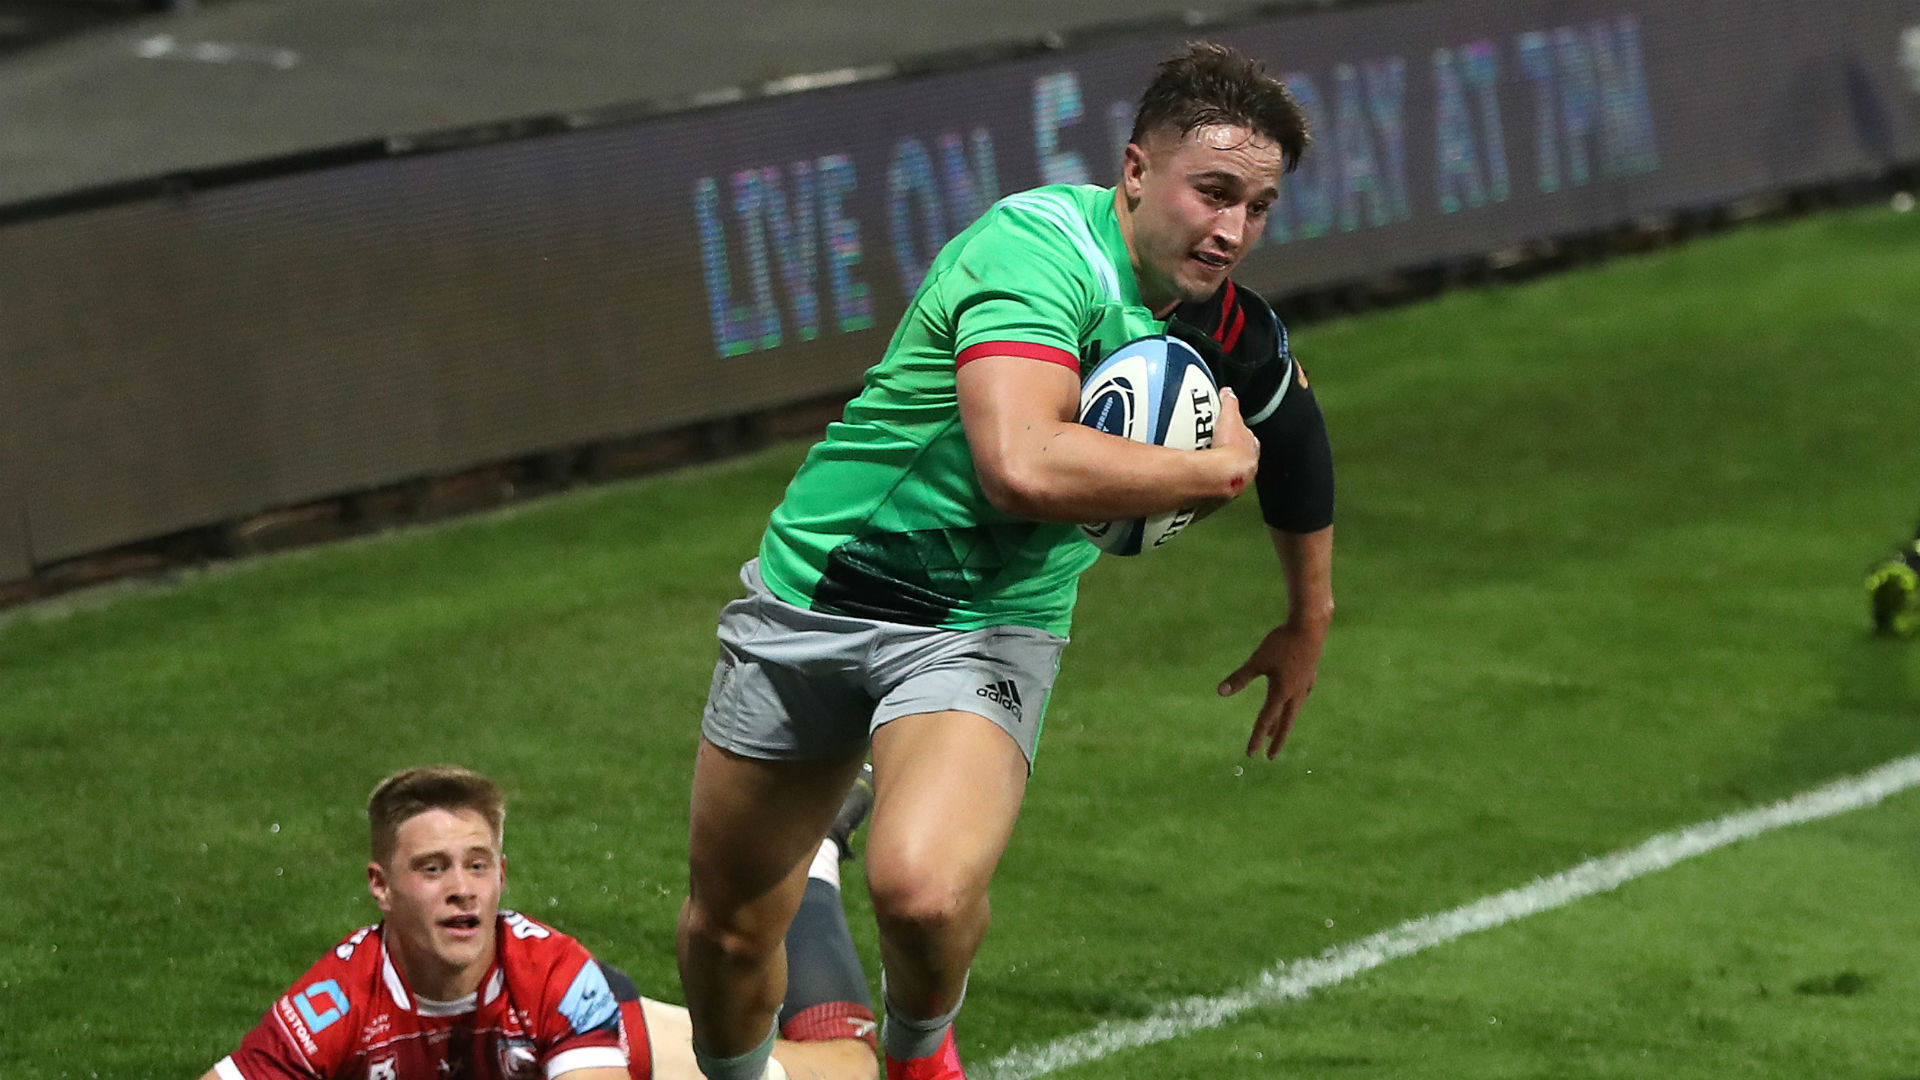 Harlequins book top-eight spot with win over Gloucester